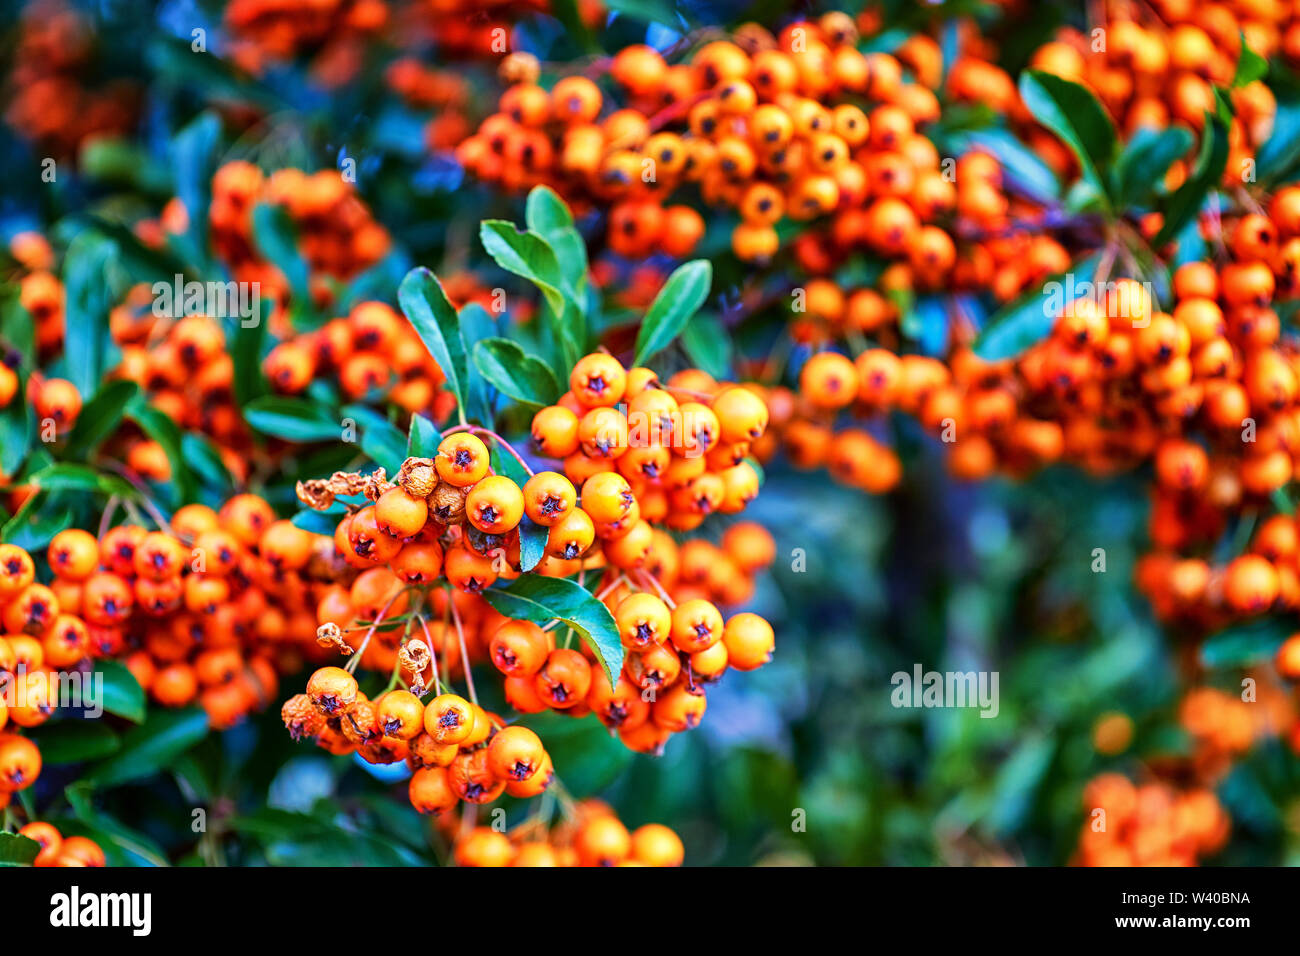 Ripe orange fruits of the sorbus aria in autumn with blurred background. - Stock Image